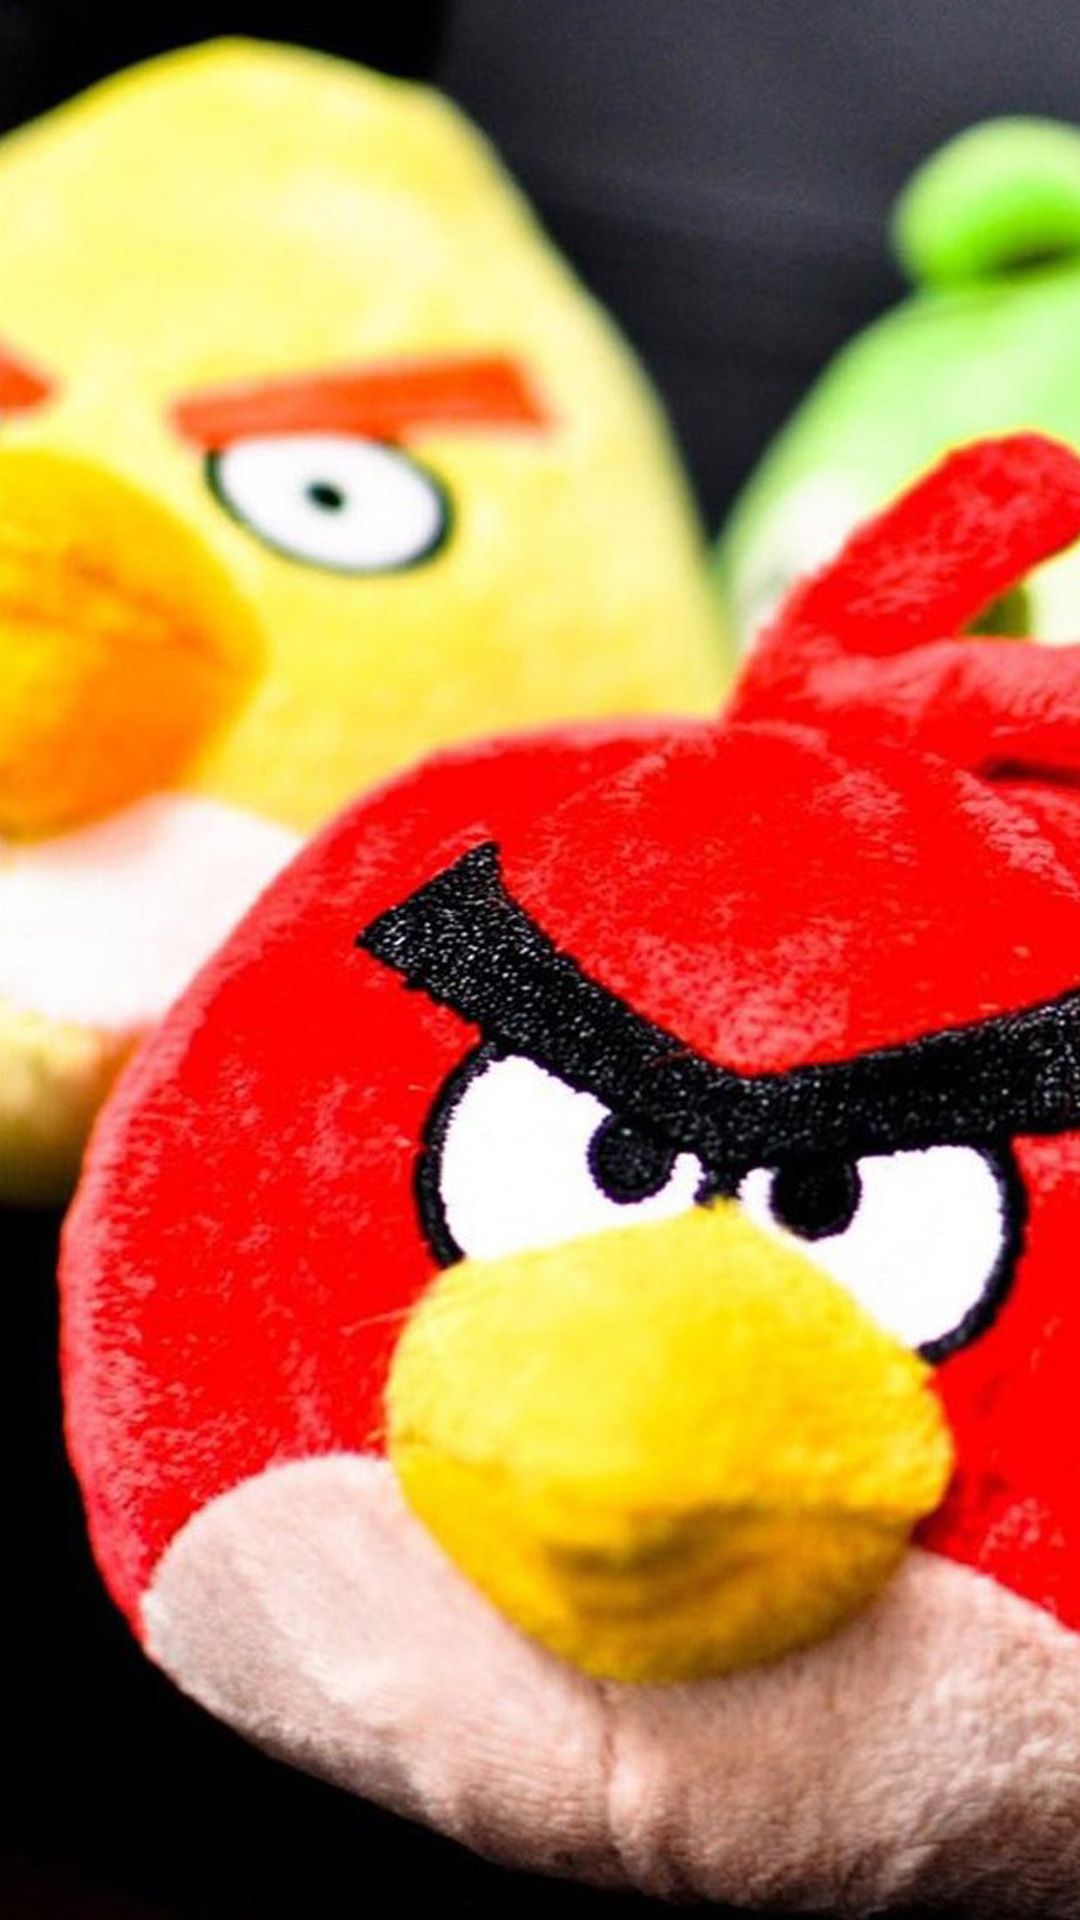 Real Angry Bird Toy Android wallpaper